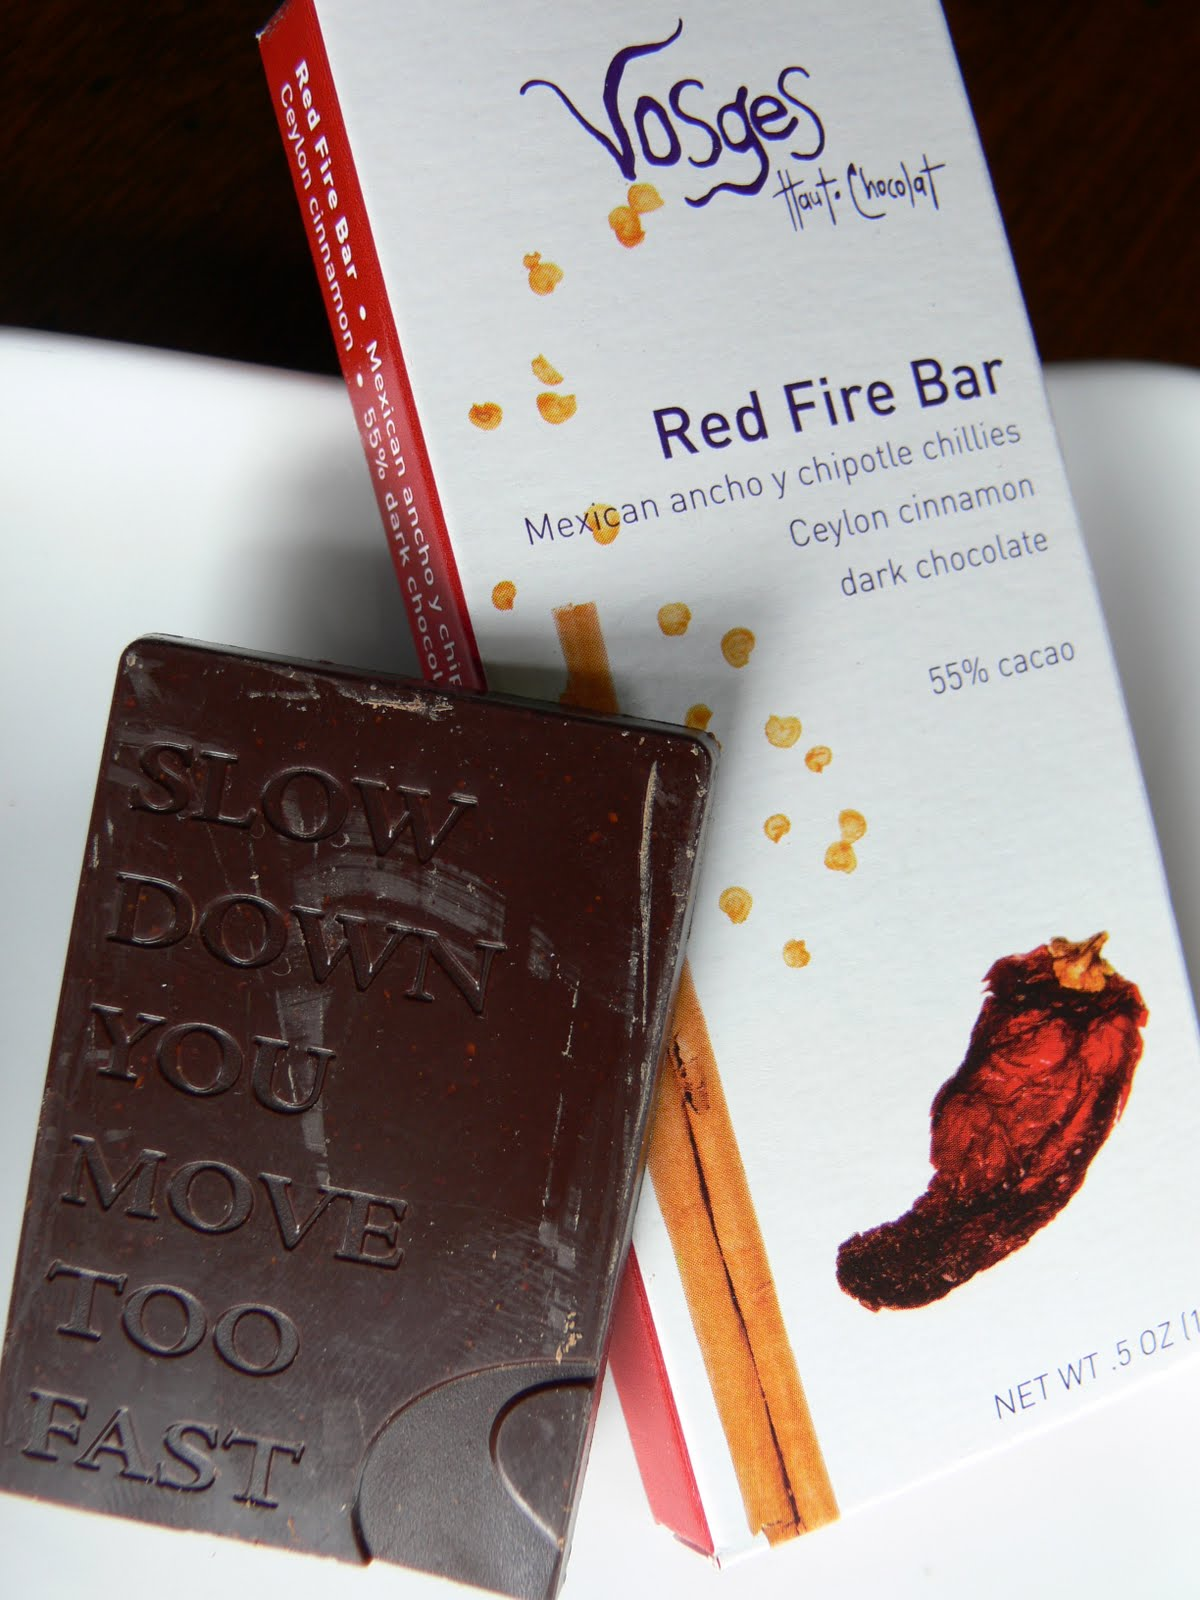 The Ultimate Chocolate Blog: Fire and Ice - Vosges uses chili and ...